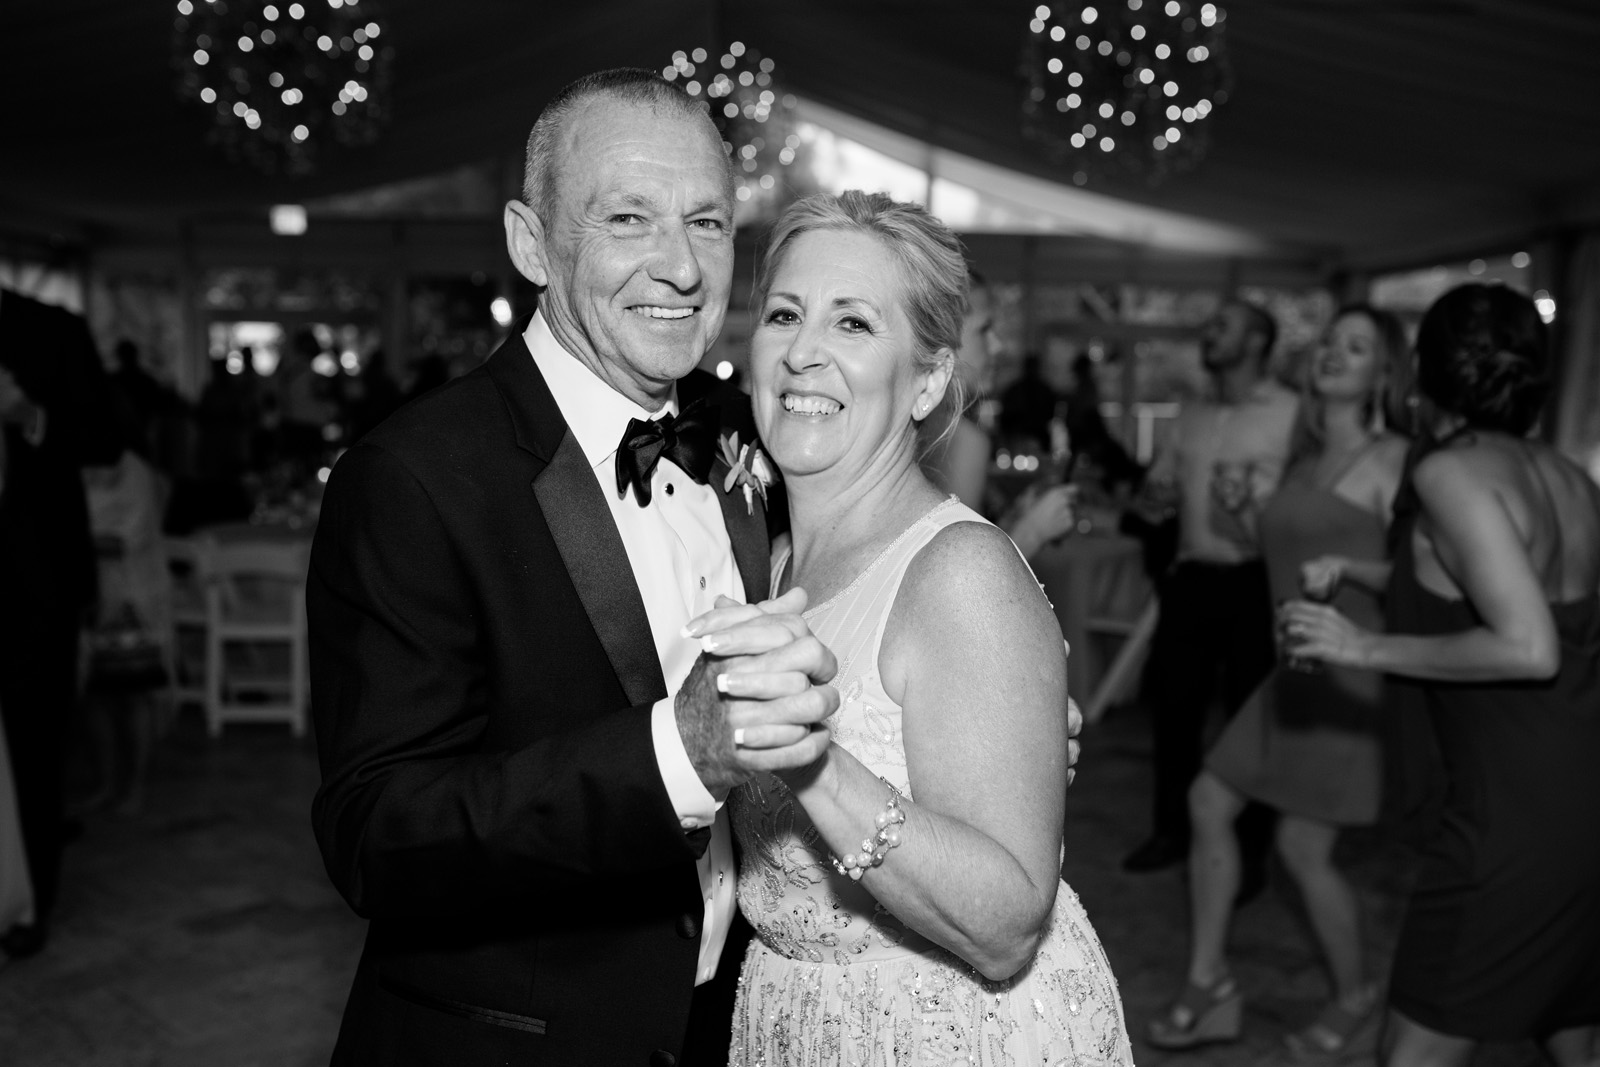 Parents of the Bride and Groom dancing at wedding reception